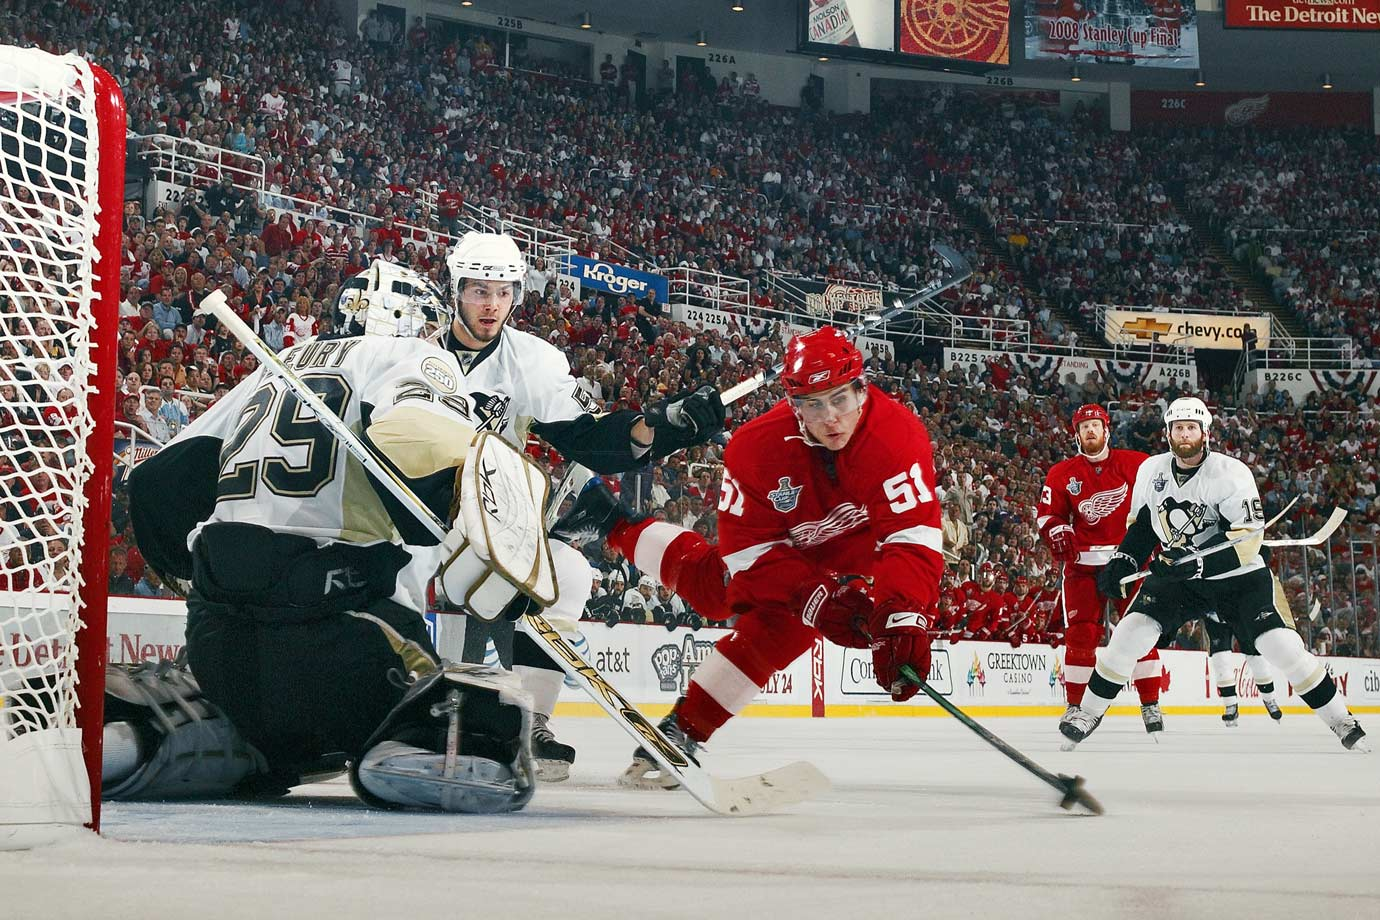 The Red Wings center dangled and dazzled, scoring at 8:48 of the third period in Game 2 of the 2008 Final. His goal gave Detroit a 3-0 lead and 2-0 series advantage over Pittsburgh and goalie Marc-Andre Fleury.